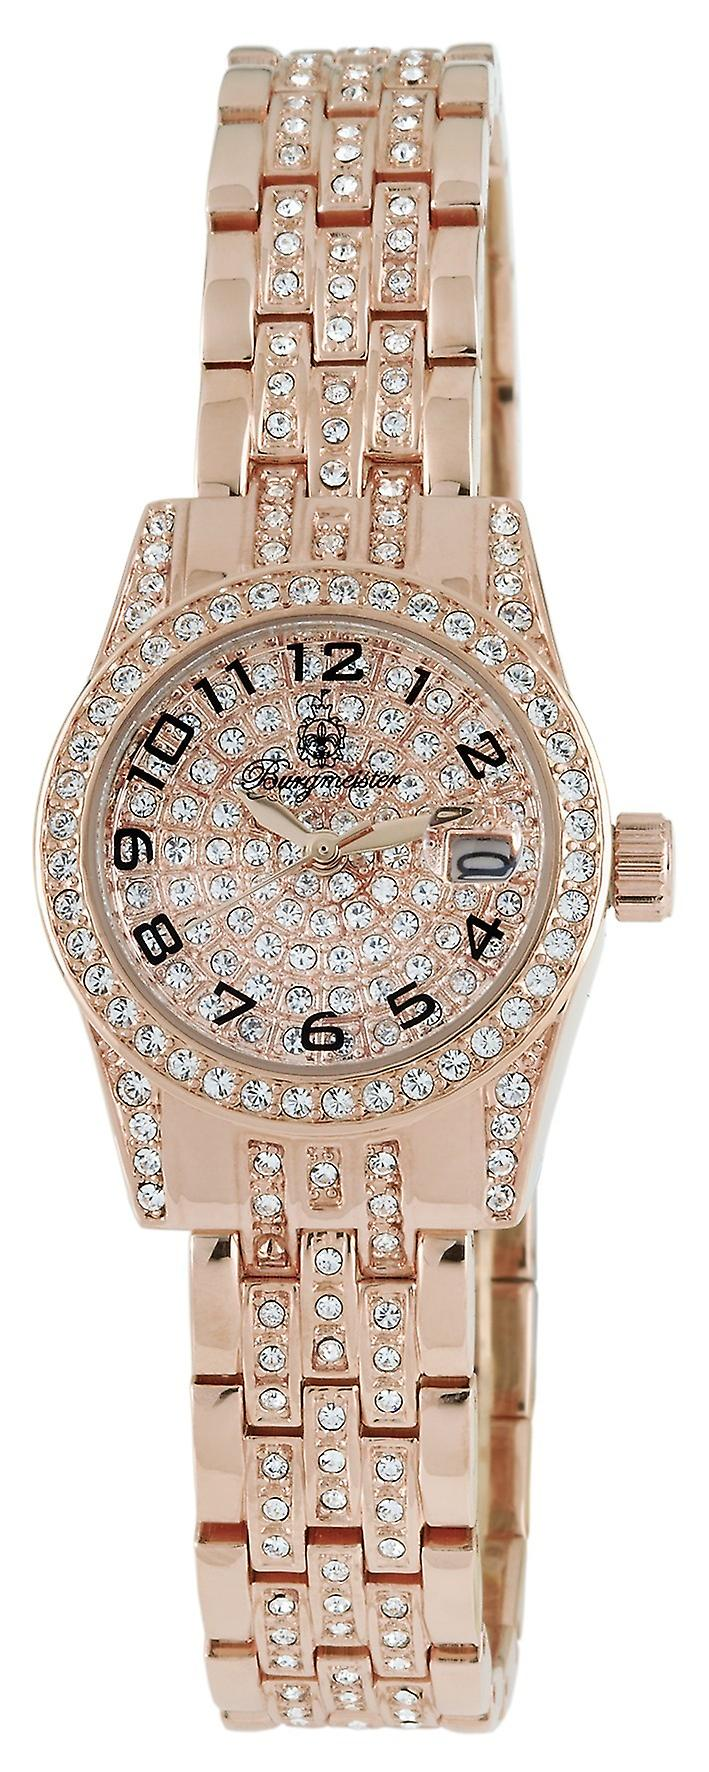 Burgmeister ladies quartz watch Diamond Star BM120-399